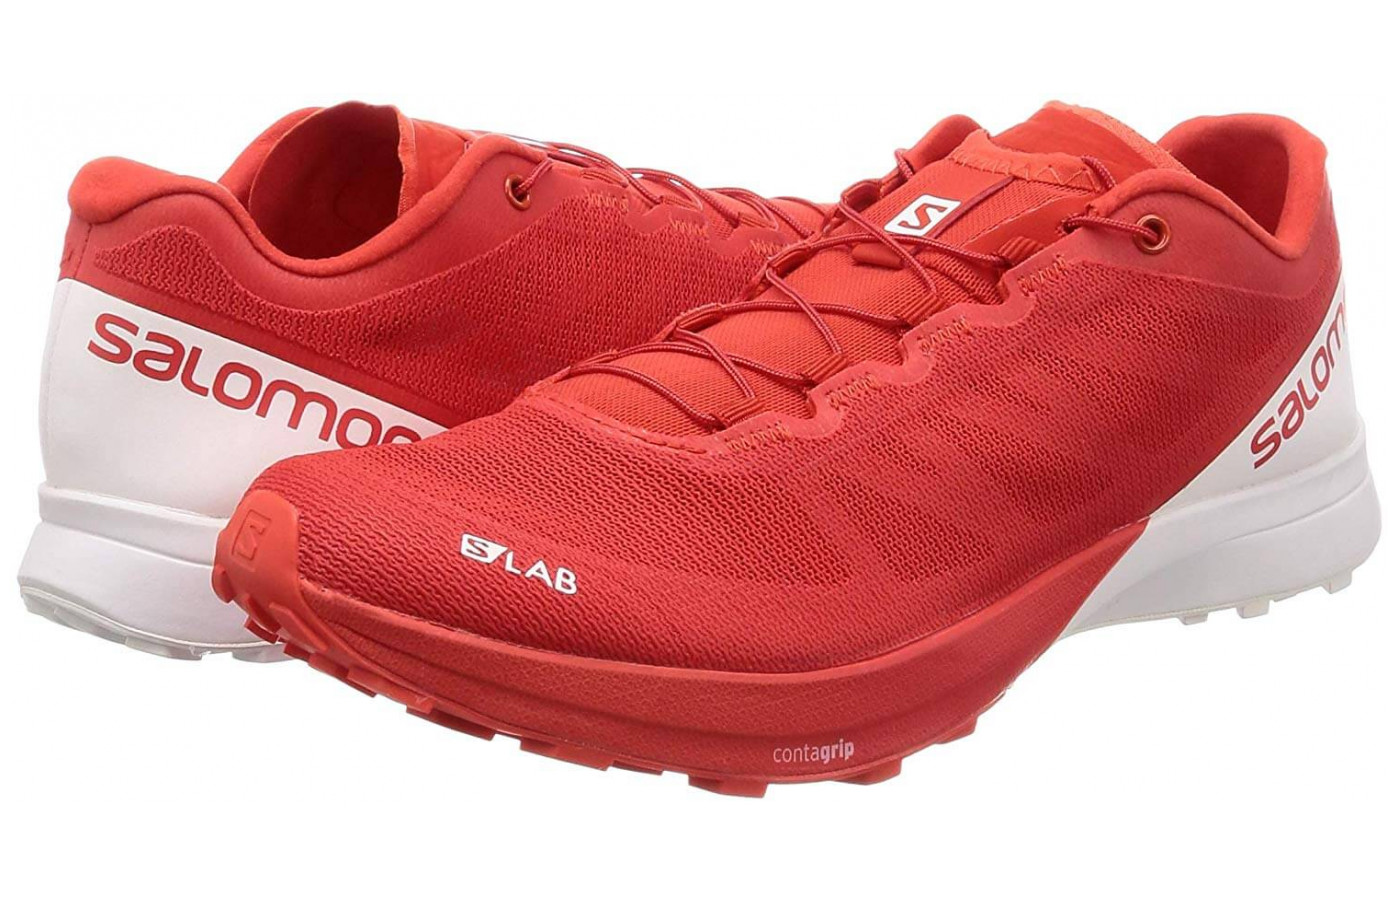 Salomon S/Lab Sense 7 Left